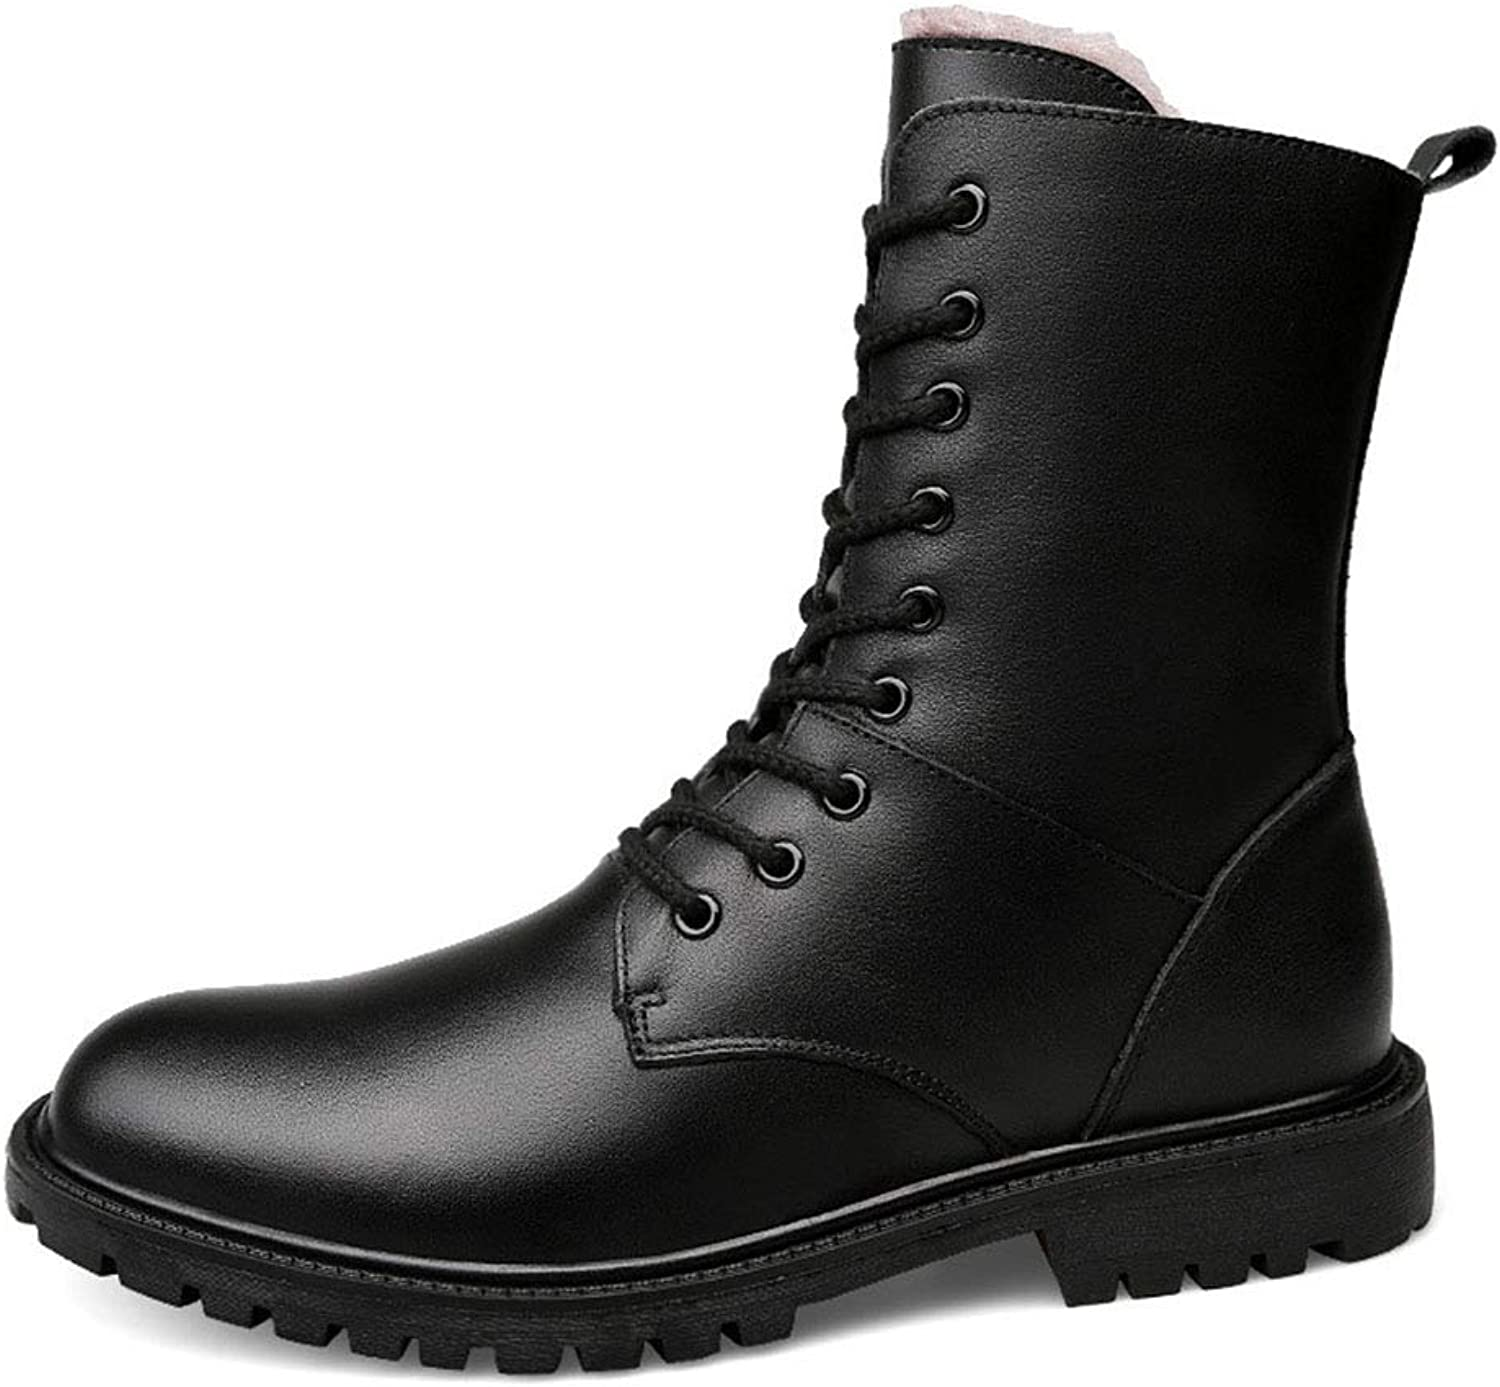 Men's Booties Fall Winter New Martin Boots Keep WarmPlus Velvet Outdoor Motorcycle Boots Casual Comfortable Ankle Boots (color   Black, Size   38)